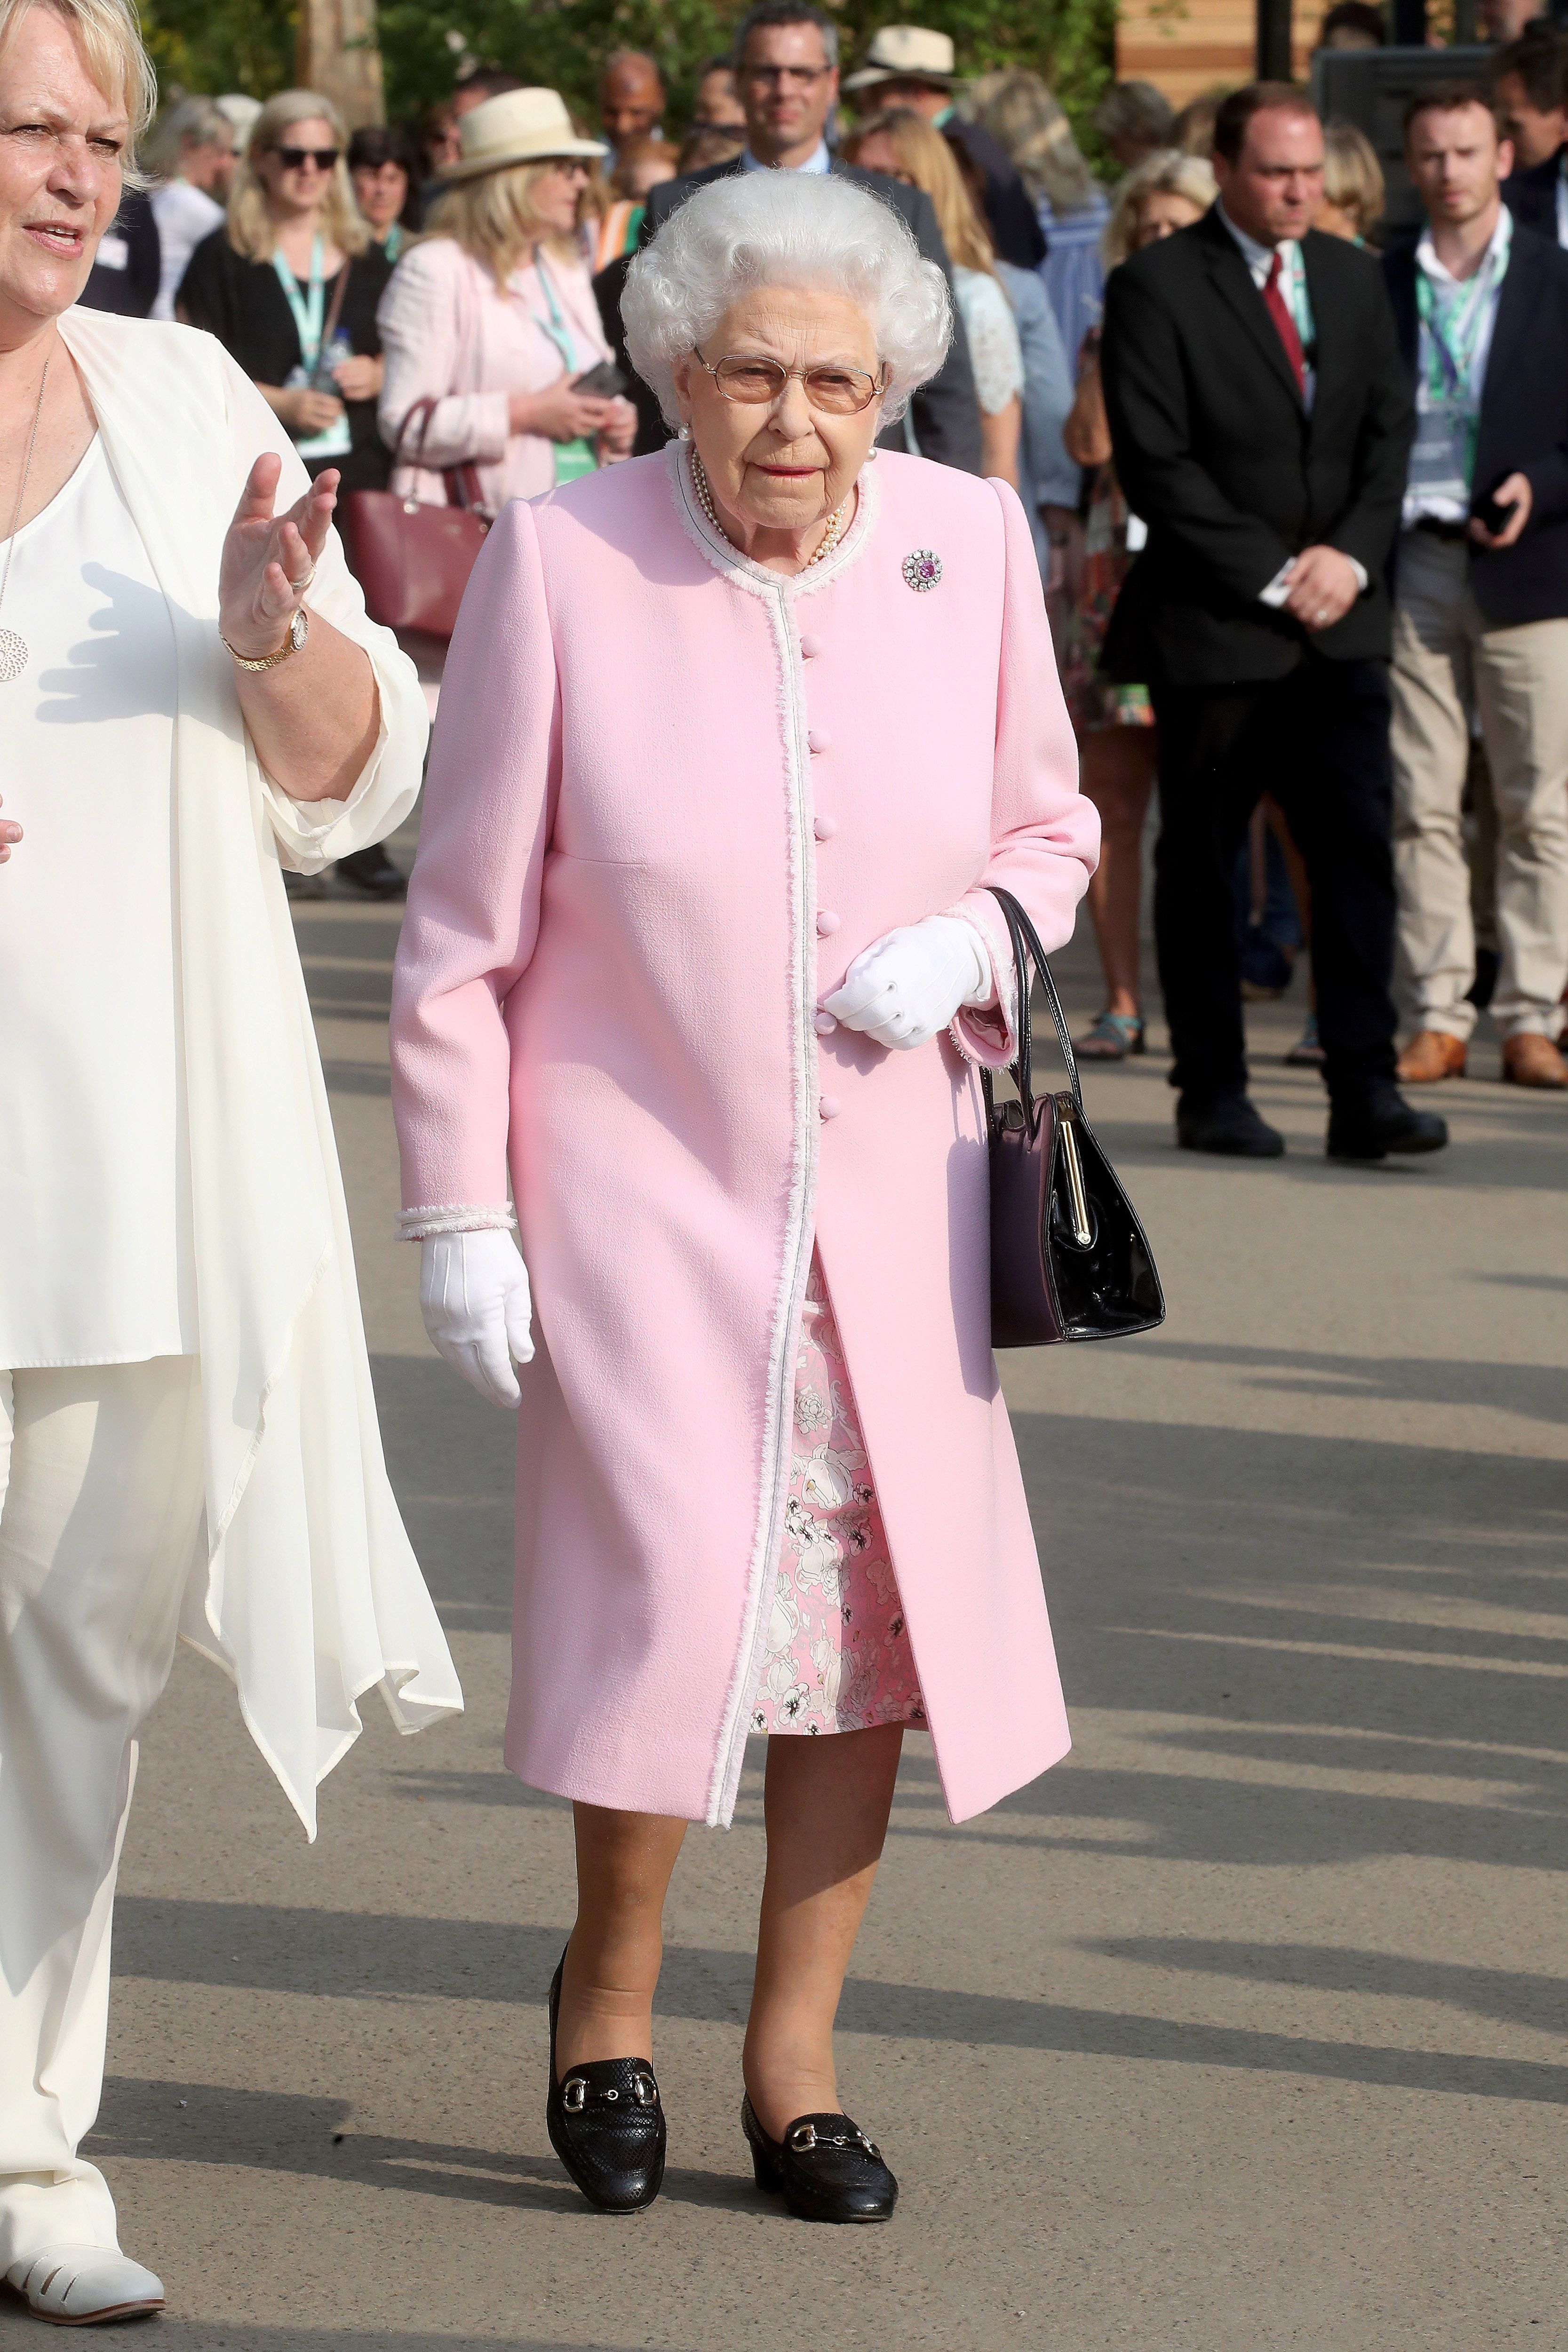 The Queen Color-Coordinates Her Way Through Another Royal Appearance ...